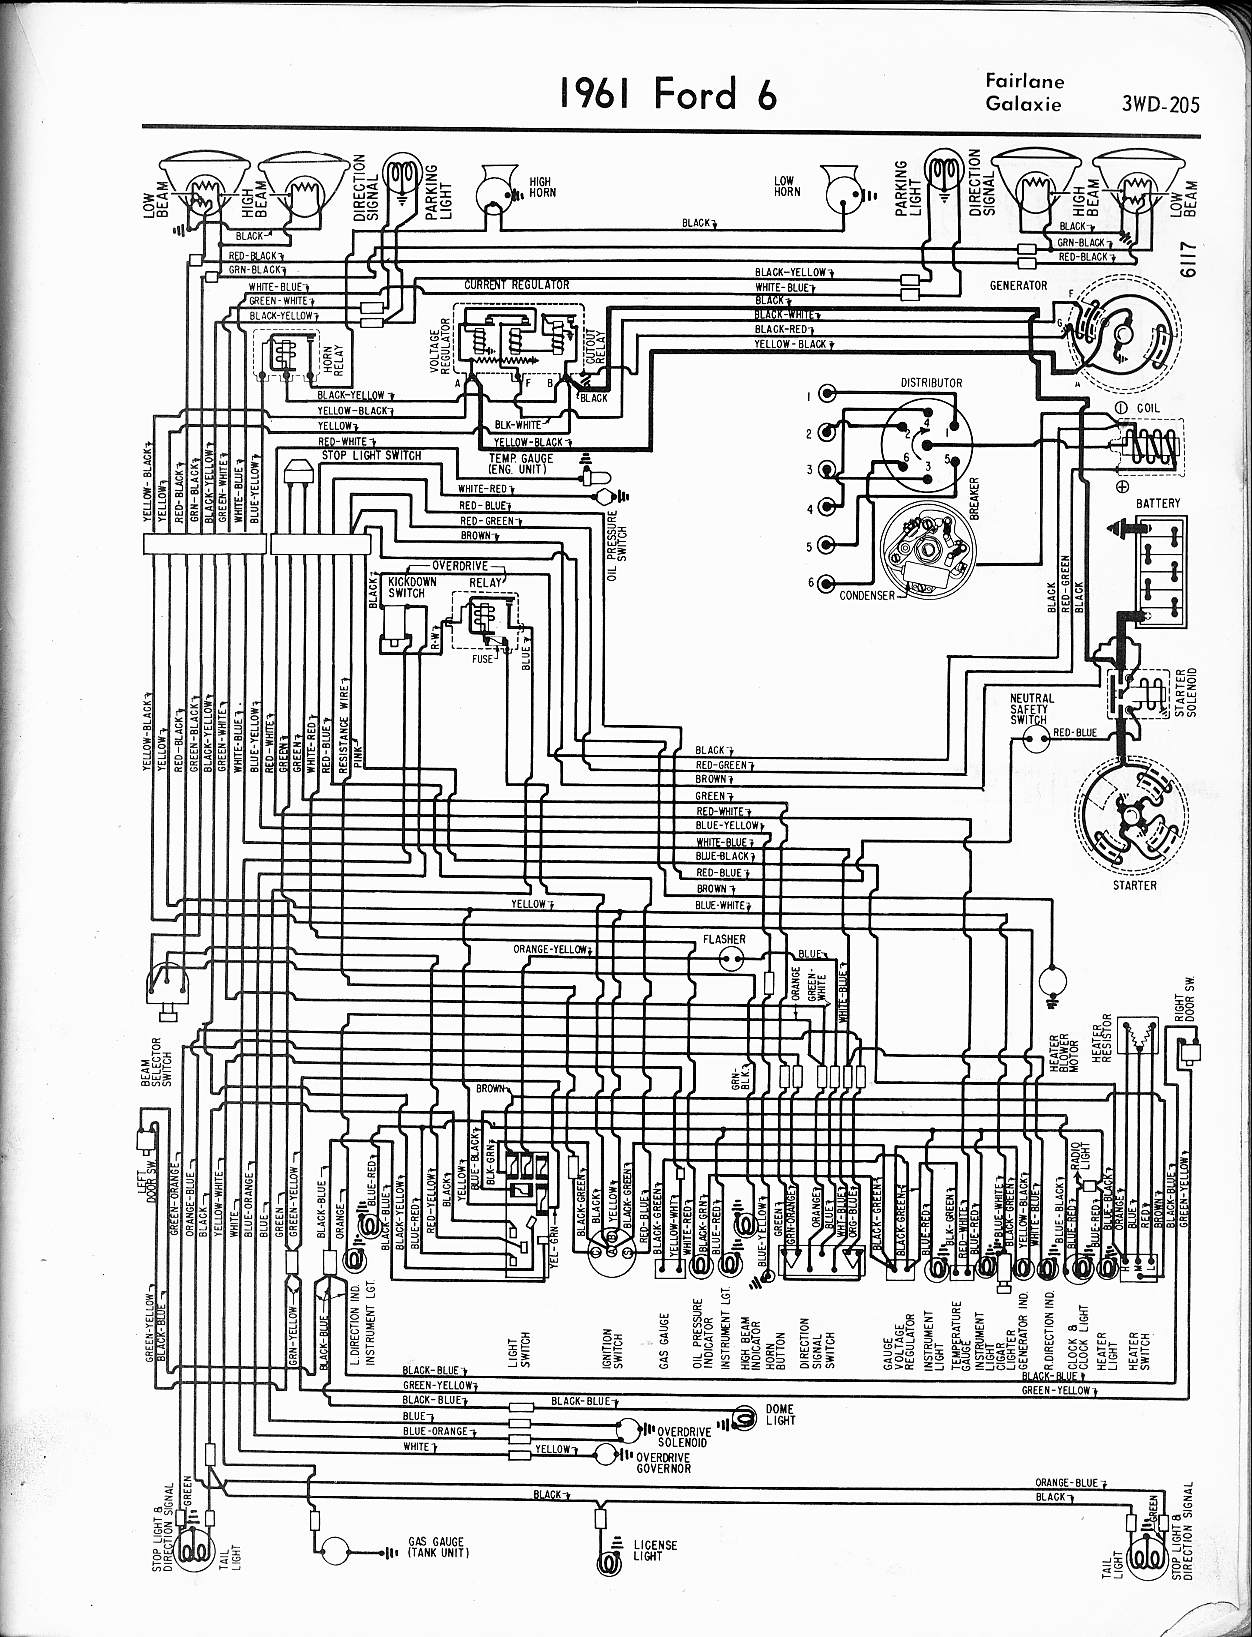 61 ford f100 wiring diagram wiring info u2022 rh dasdes co 1961 ford ranchero wiring diagram Ford F-150 Wiring Diagram